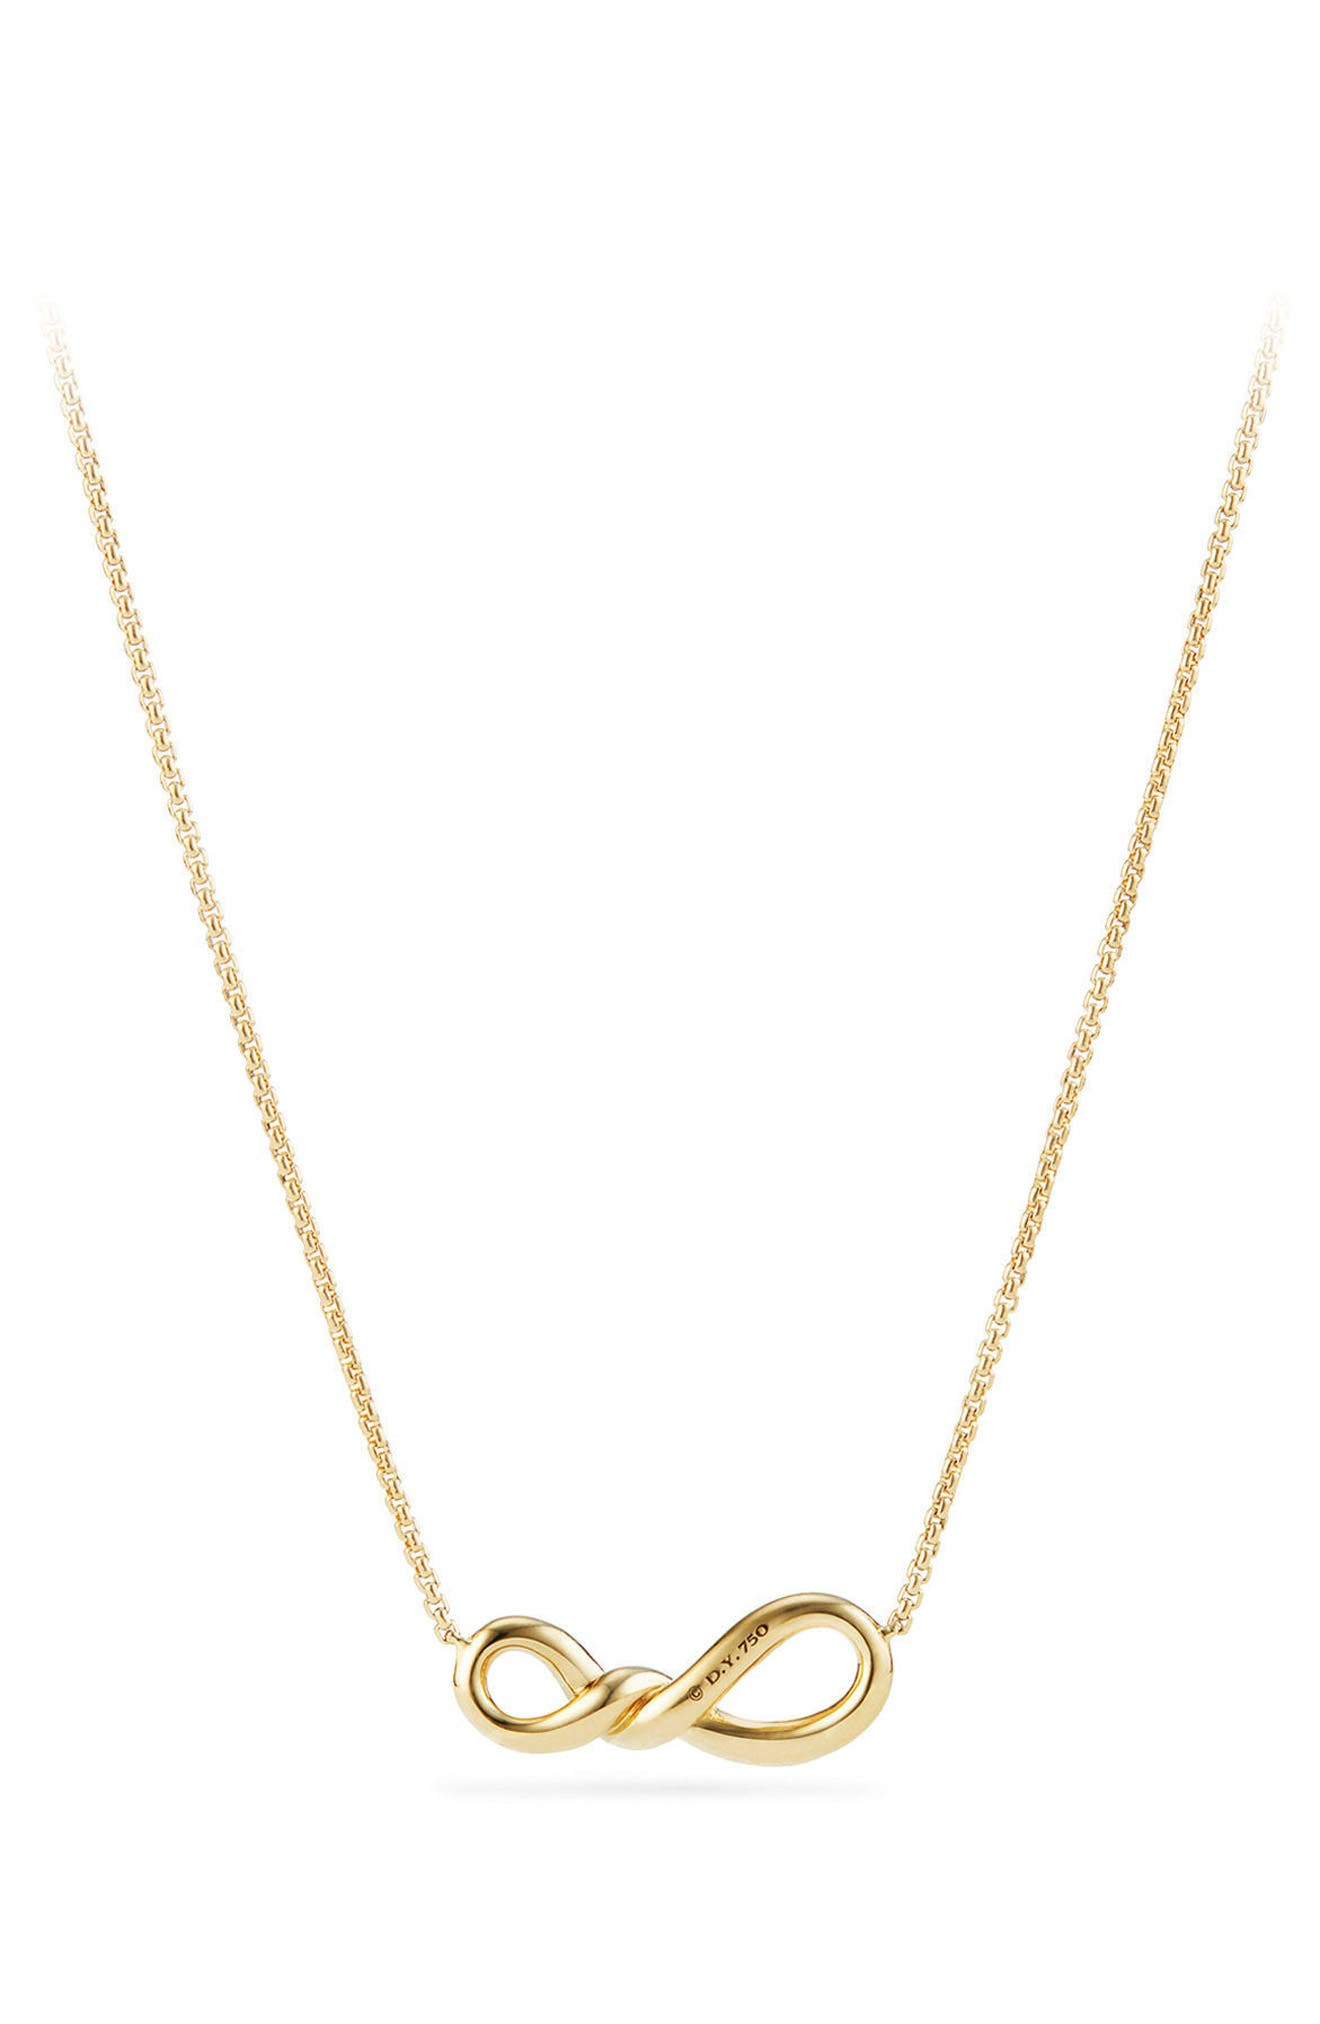 Alternate Image 3  - David Yurman Continuance Pendant Necklace in 18K Gold with Diamonds